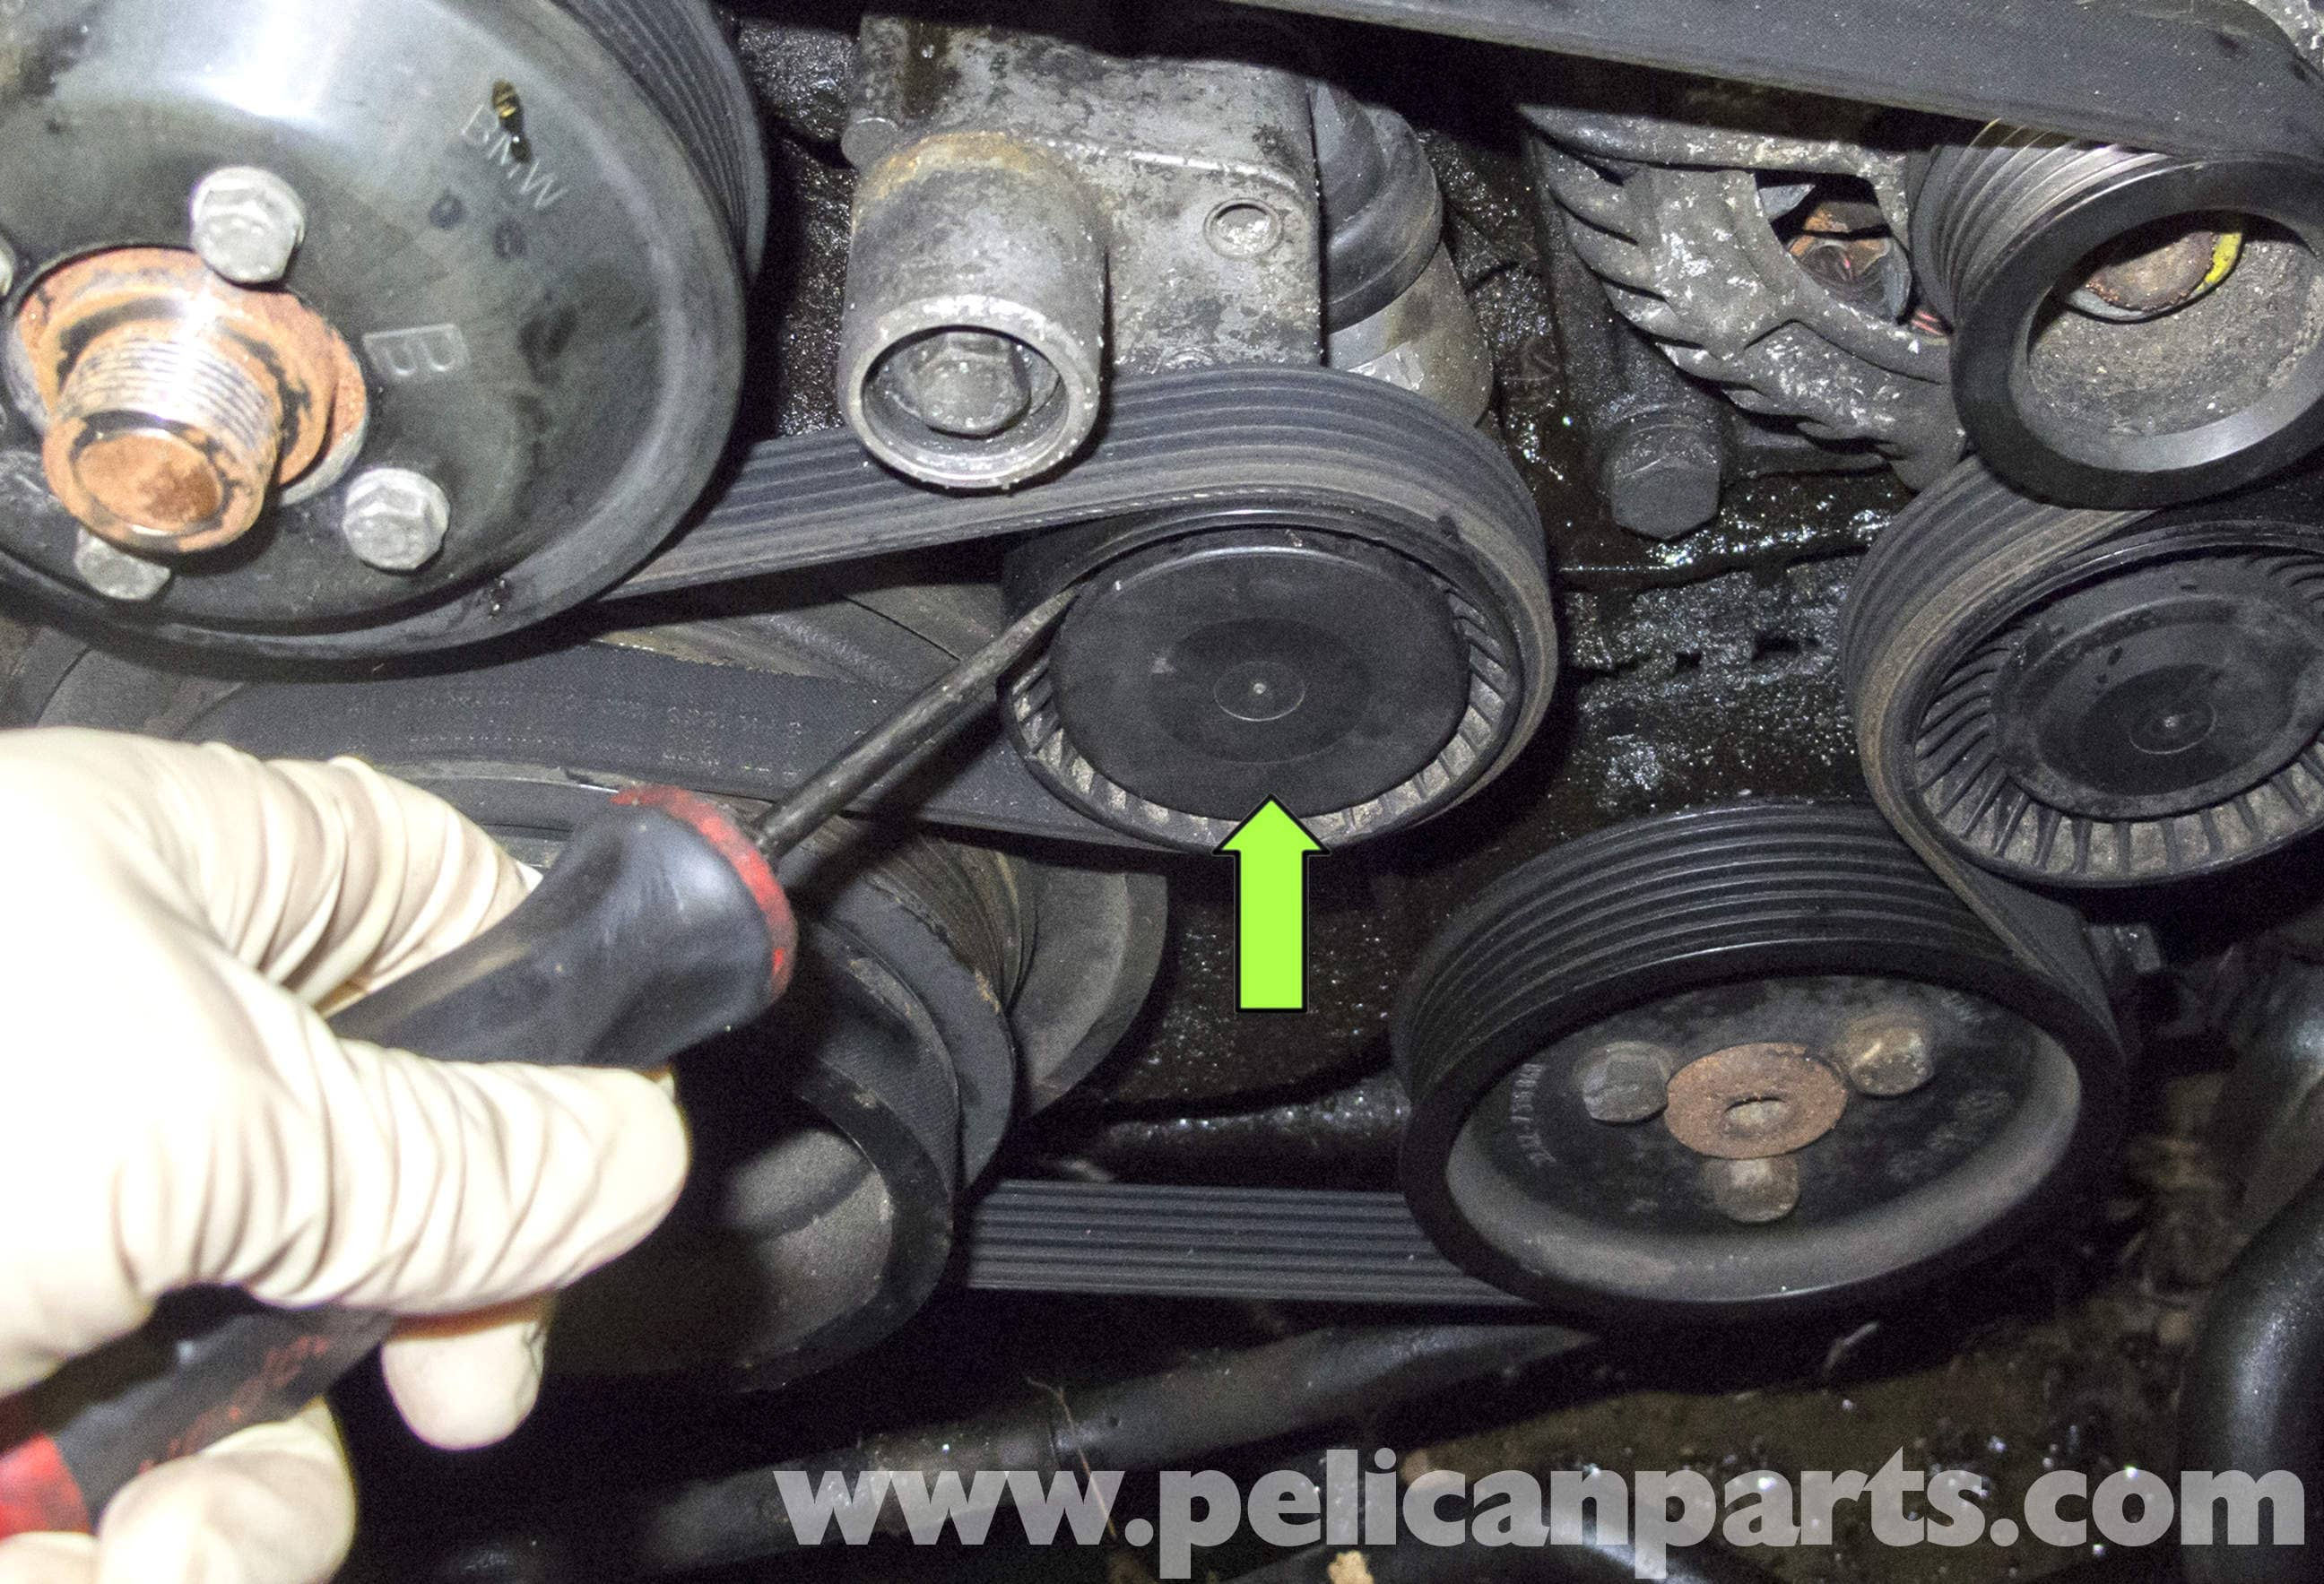 BMW E60 5-Series Water pump Replacement (M54 6 Cylinder) - Pelican Parts Technical Article